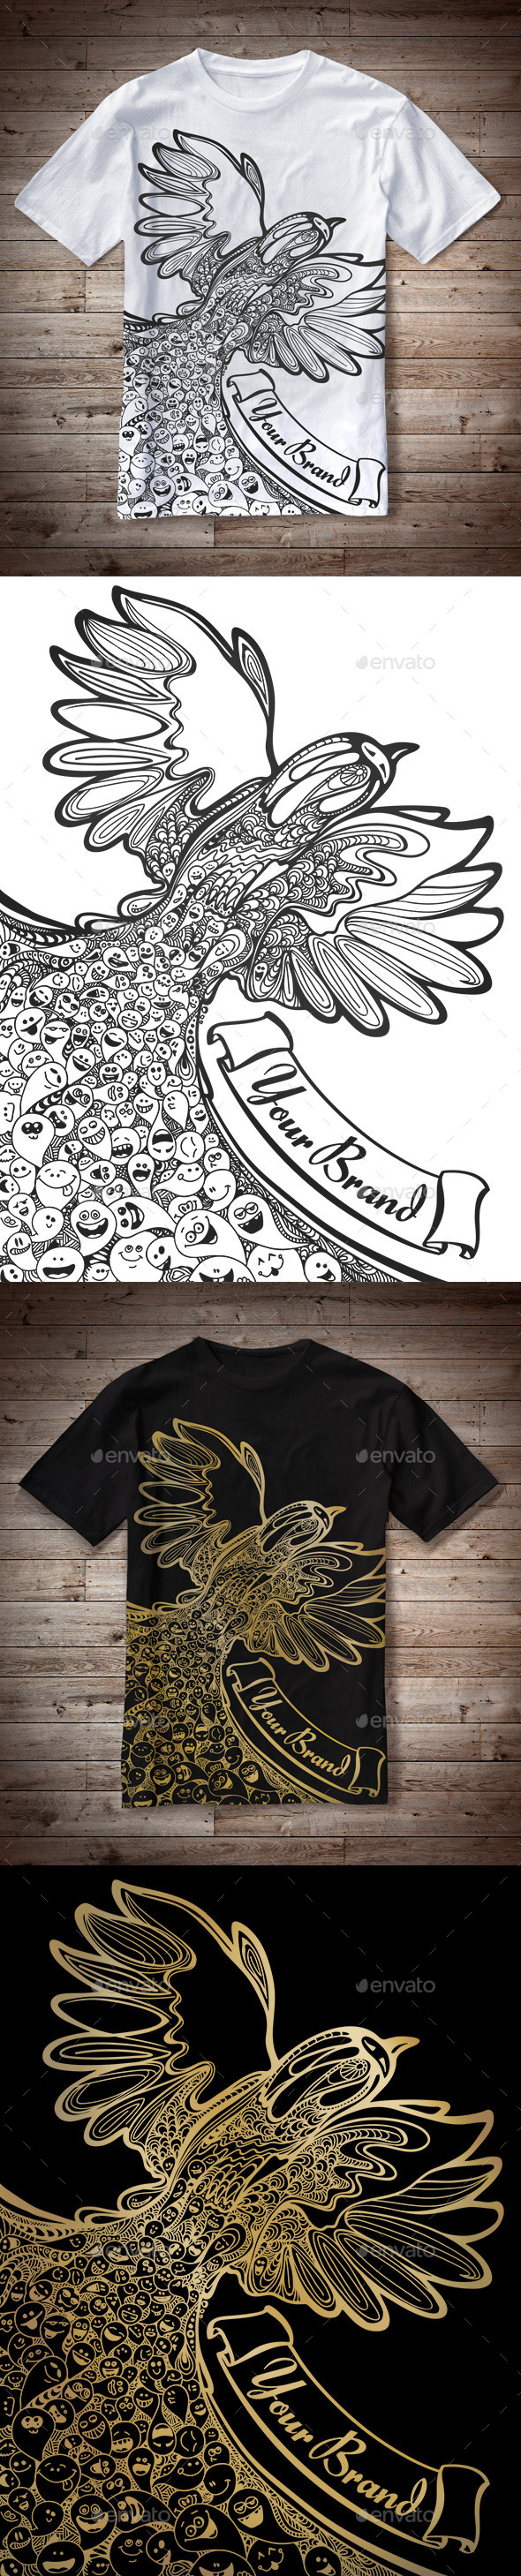 GraphicRiver T-Shirt Illustration Bird Doodles 10543436